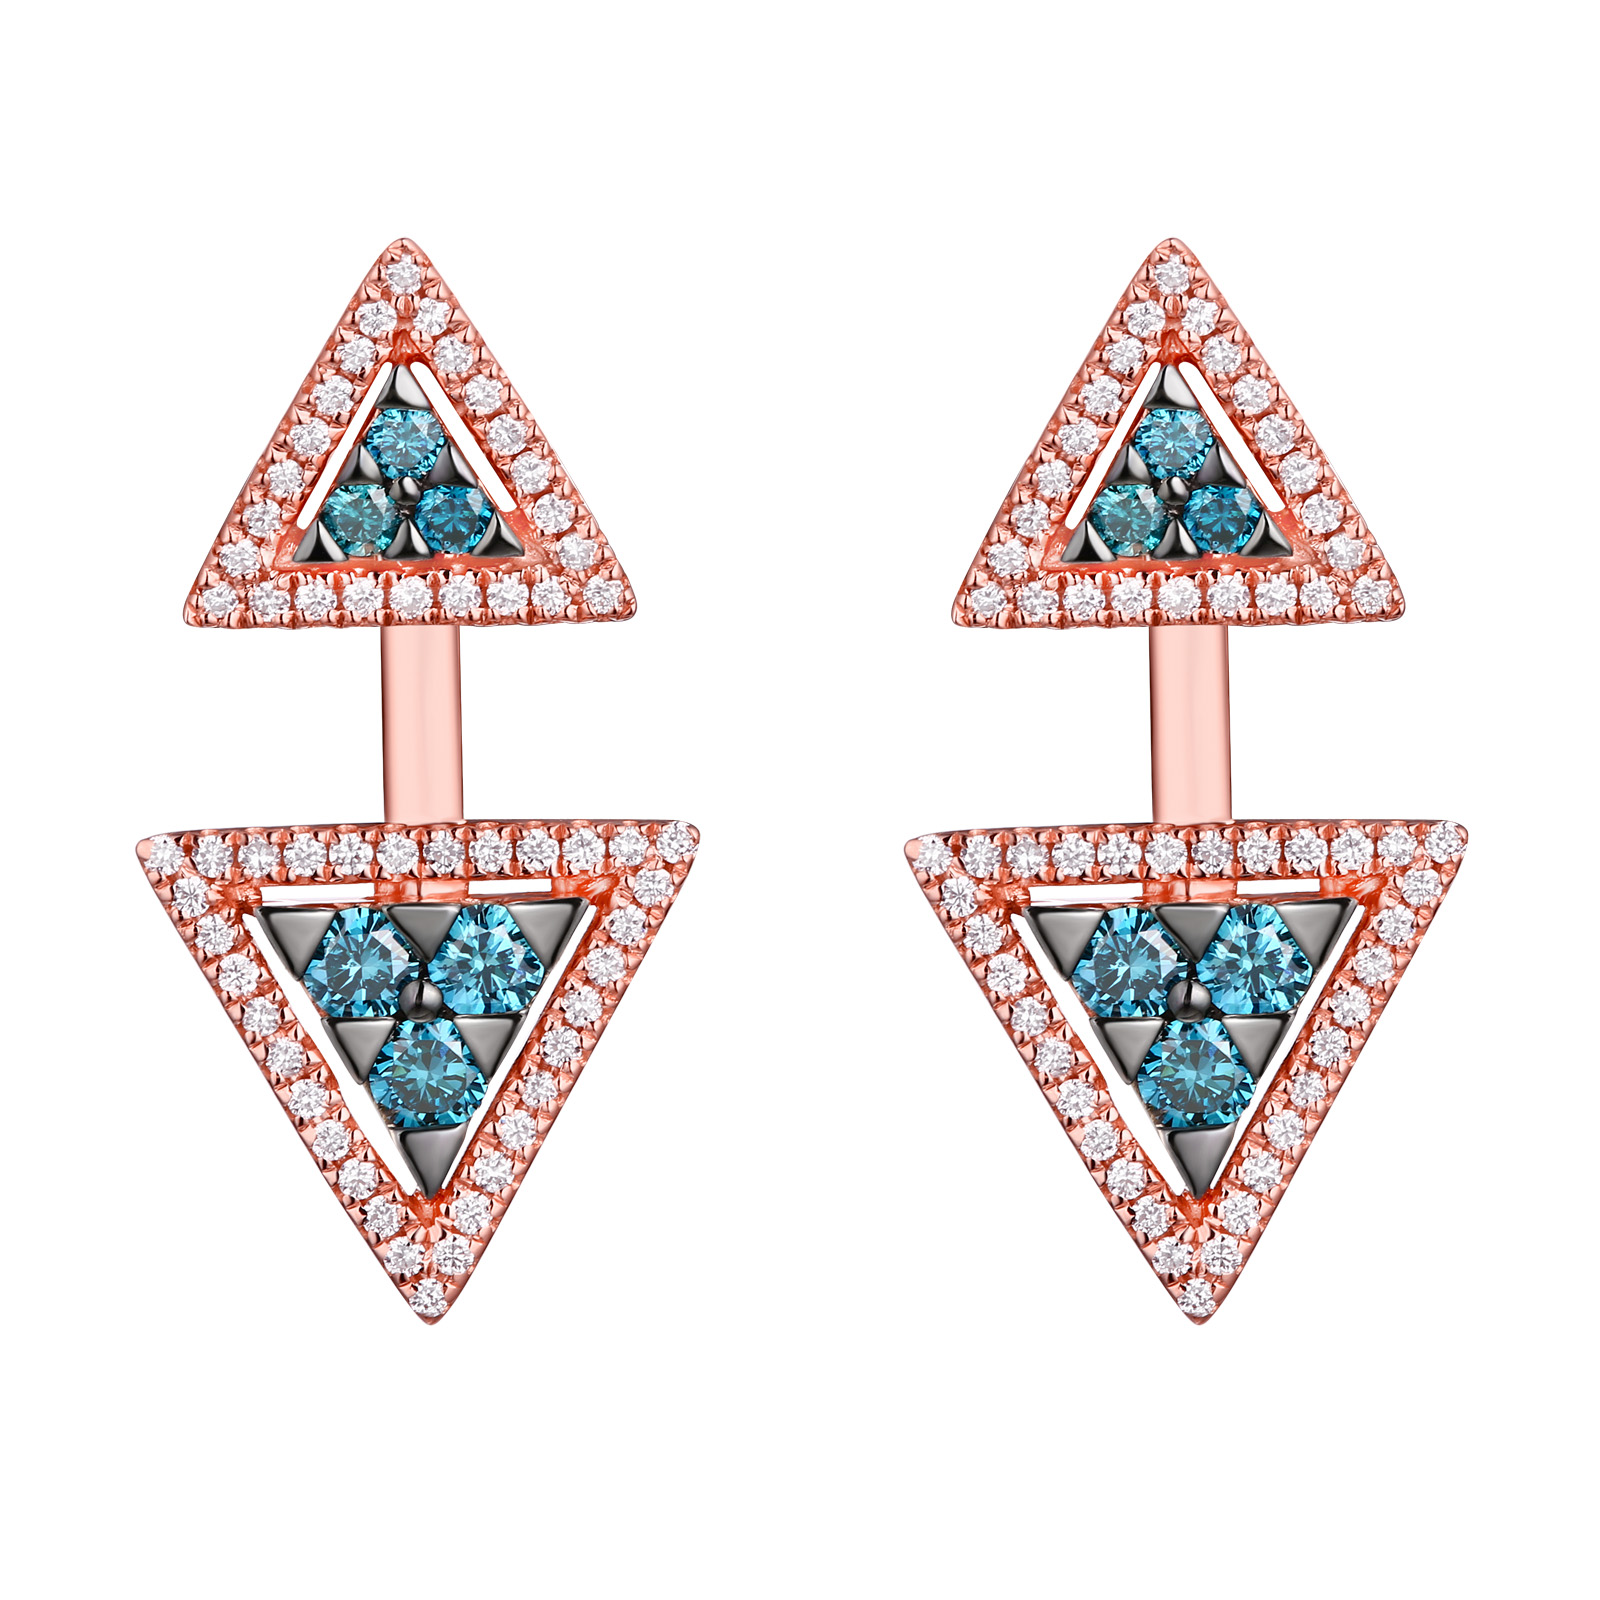 E25079ICE- 18K Rose Gold Diamond Earrings, 0.66 TCW